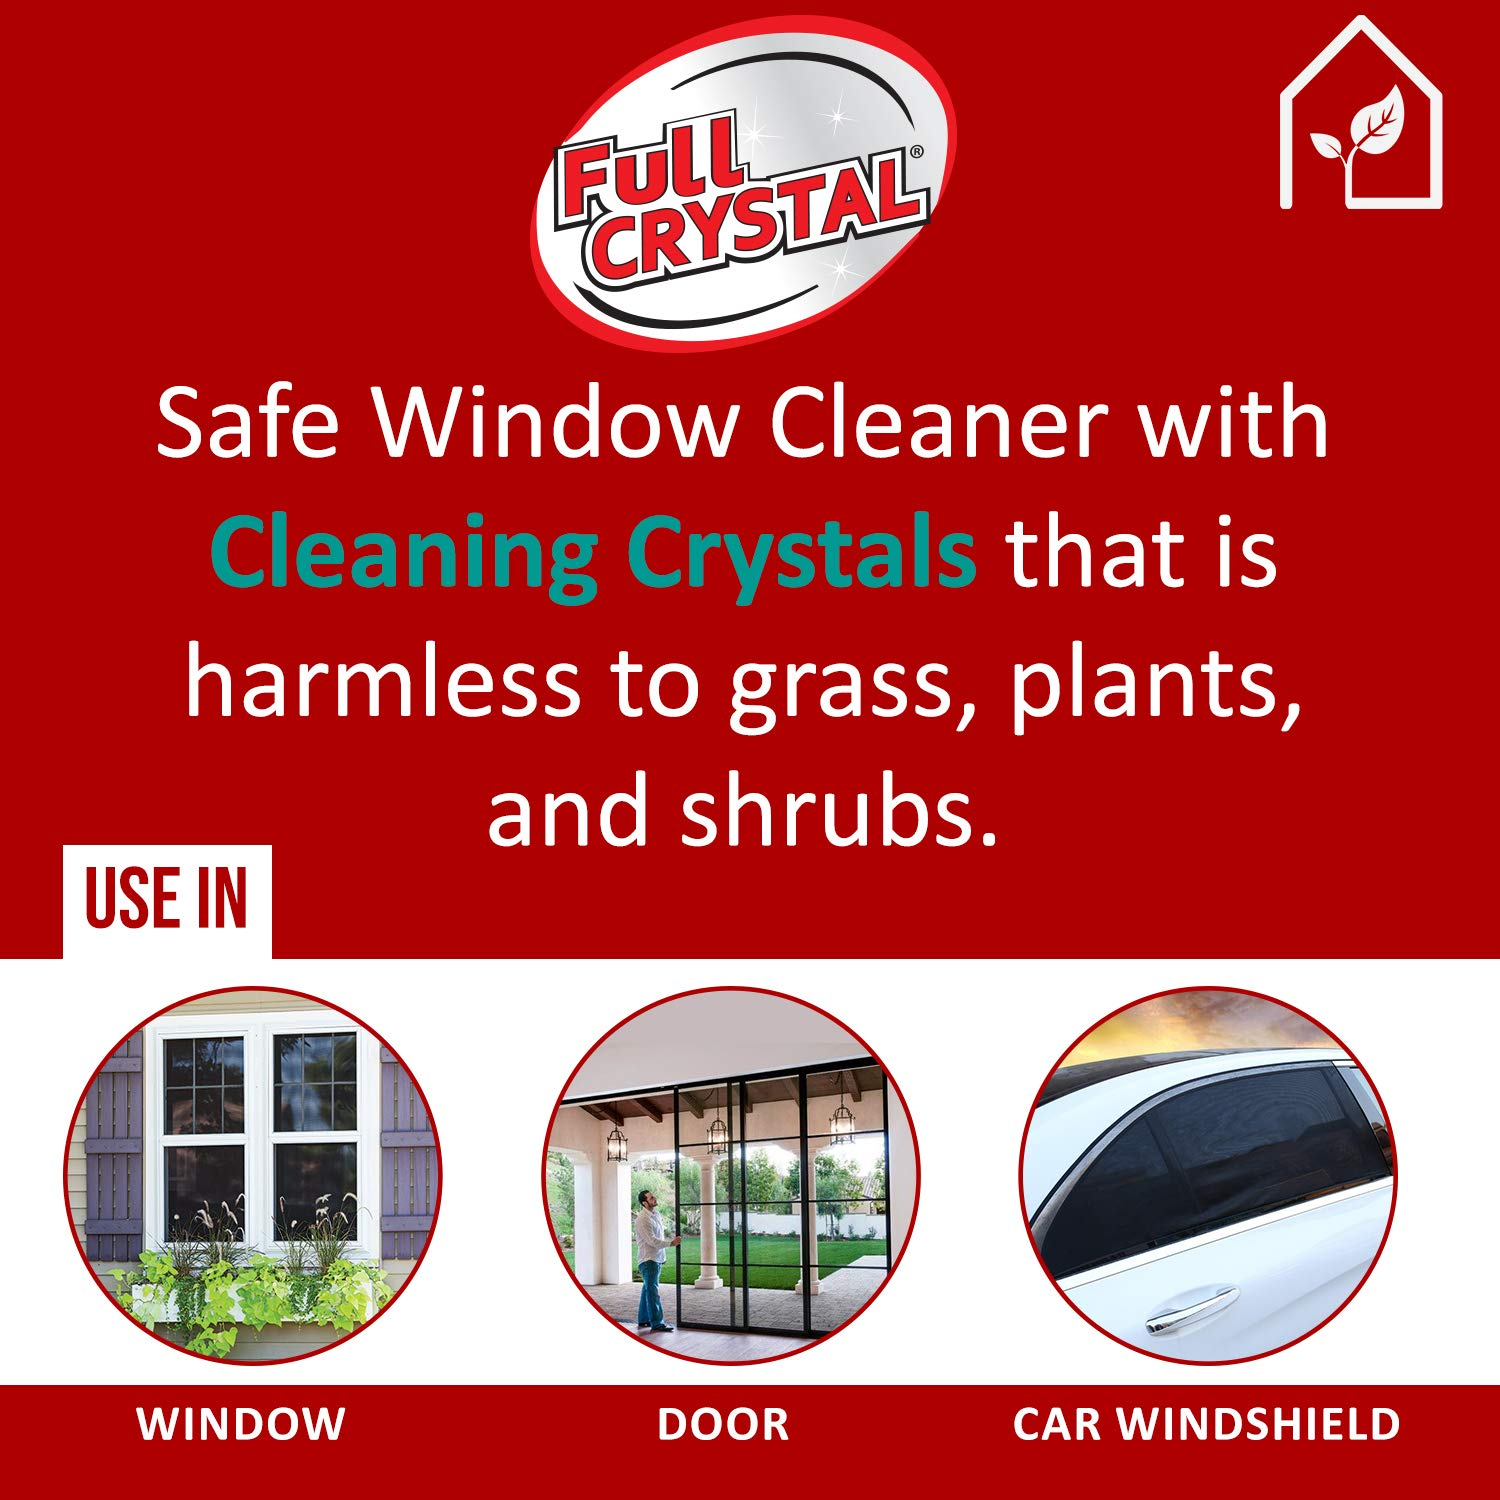 Full Crystal Kit - Bottle, Lid with Hose Attachment, and Two 4 oz. Crystal Powder Exterior Window Cleaner Packets for Glass and Screens (Cleans Up to 40 Windows) by Full Crystal (Image #4)